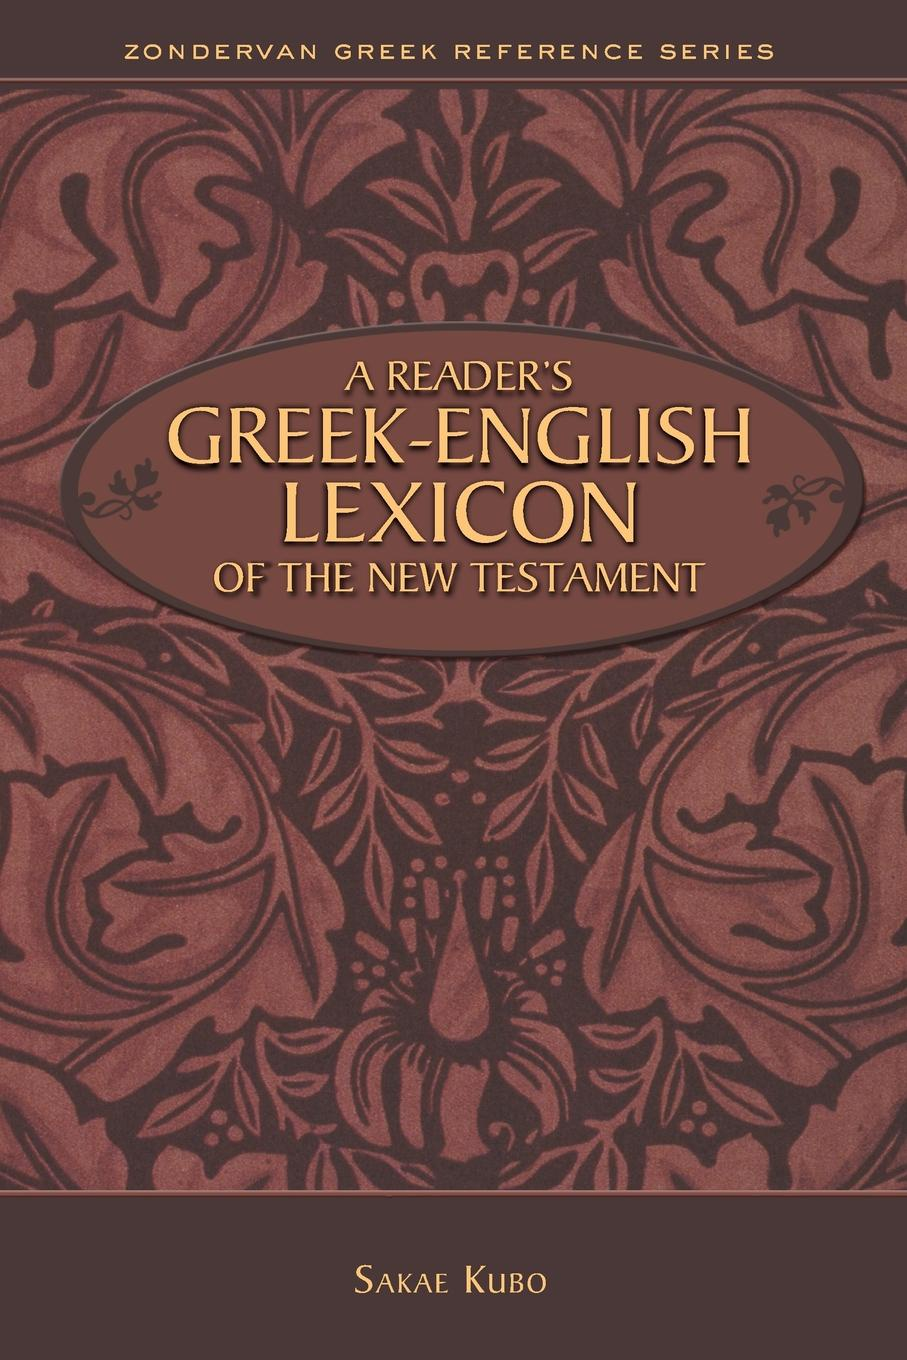 Sakae Kubo Reader's Greek-English Lexicon of the New Testament georg benedikt winer a treatise on the grammar of new testament greek regarded as a sure basis for new testament exegesis